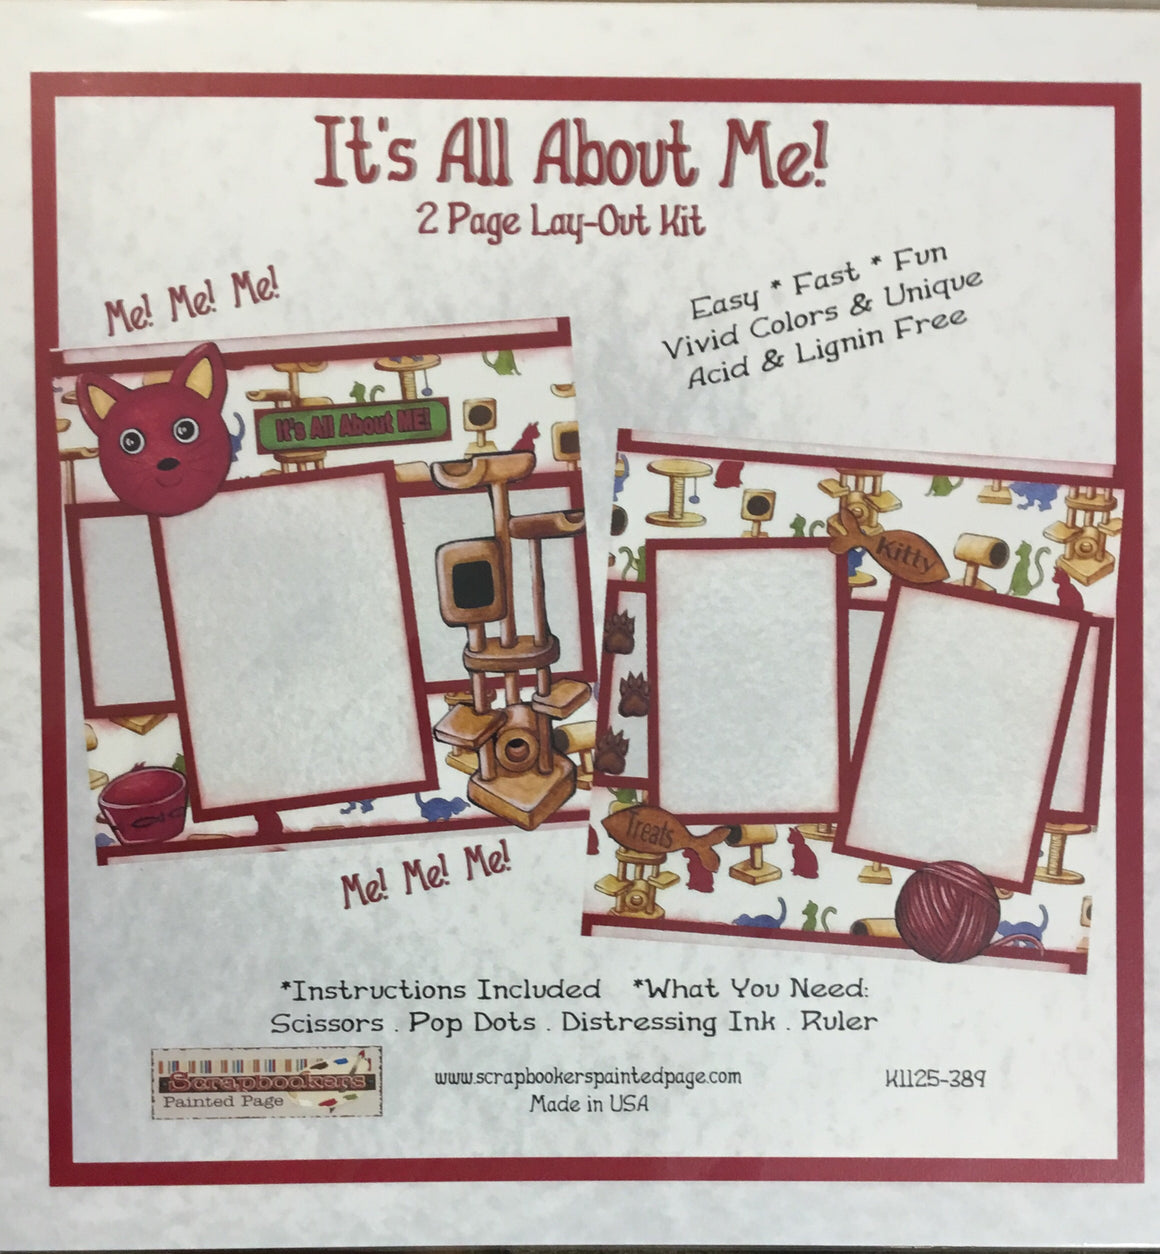 12x12 2 page layout kit It's all about me